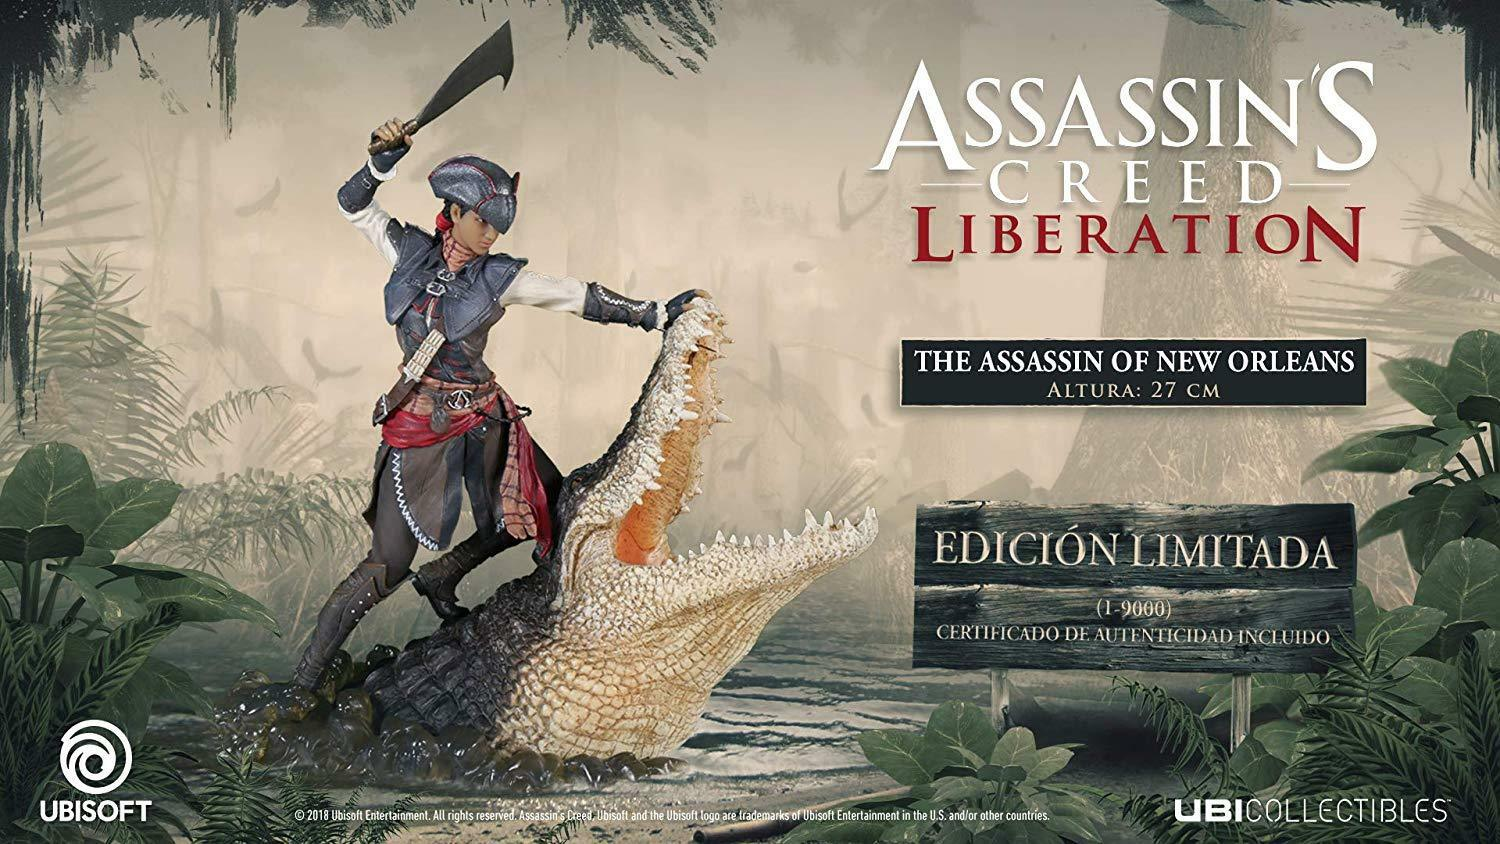 ACTION FIGURE Assassin's creed Liberation  The Assassin of New Orleans - LIMITED